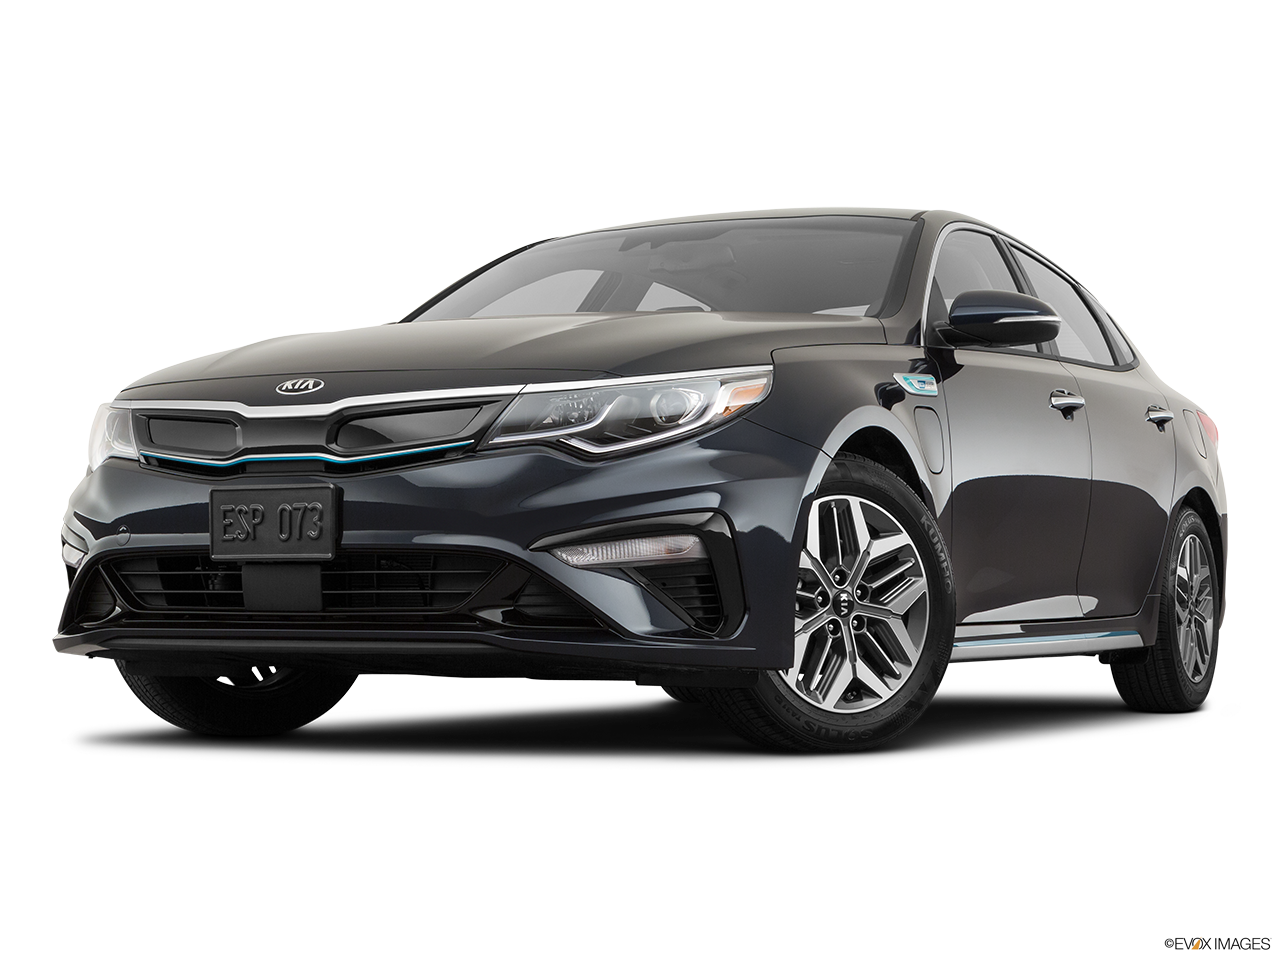 2020 Kia Optima Plug-In Hybrid photo